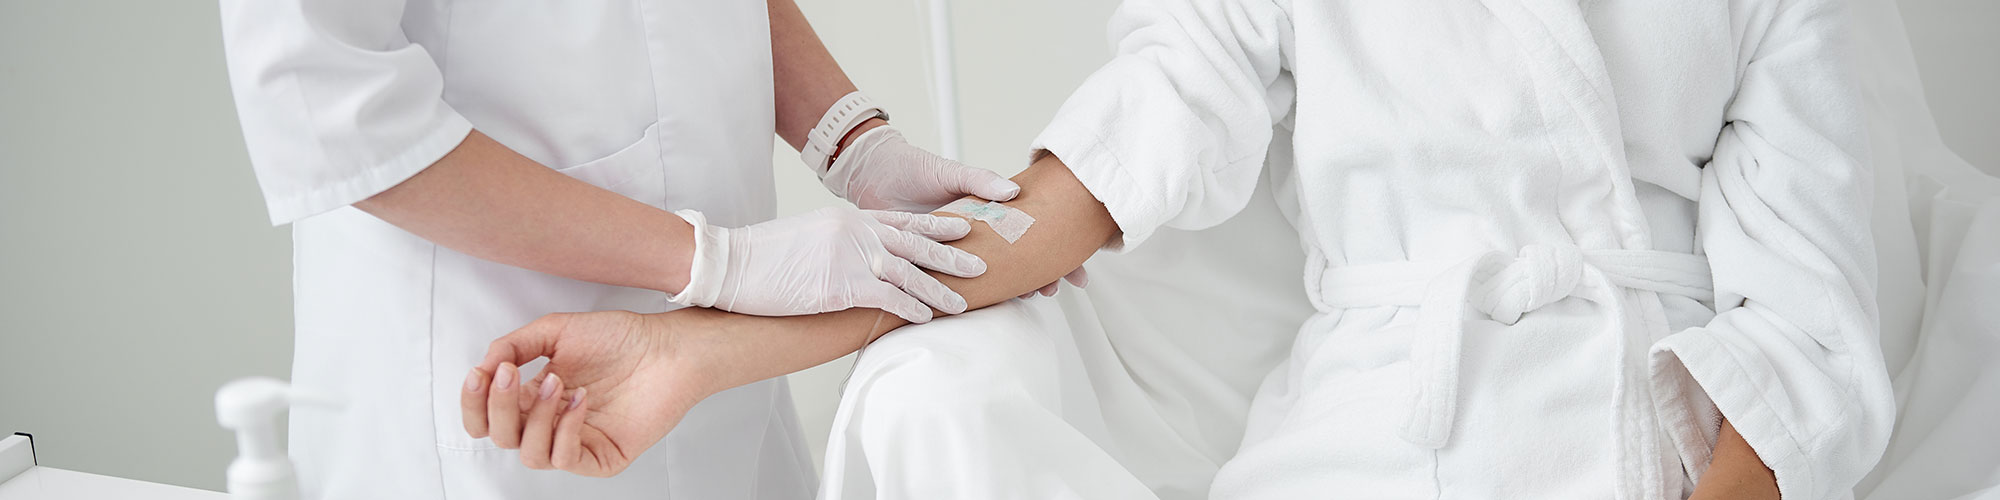 woman in robe receiving IV infusion at wellness clinic